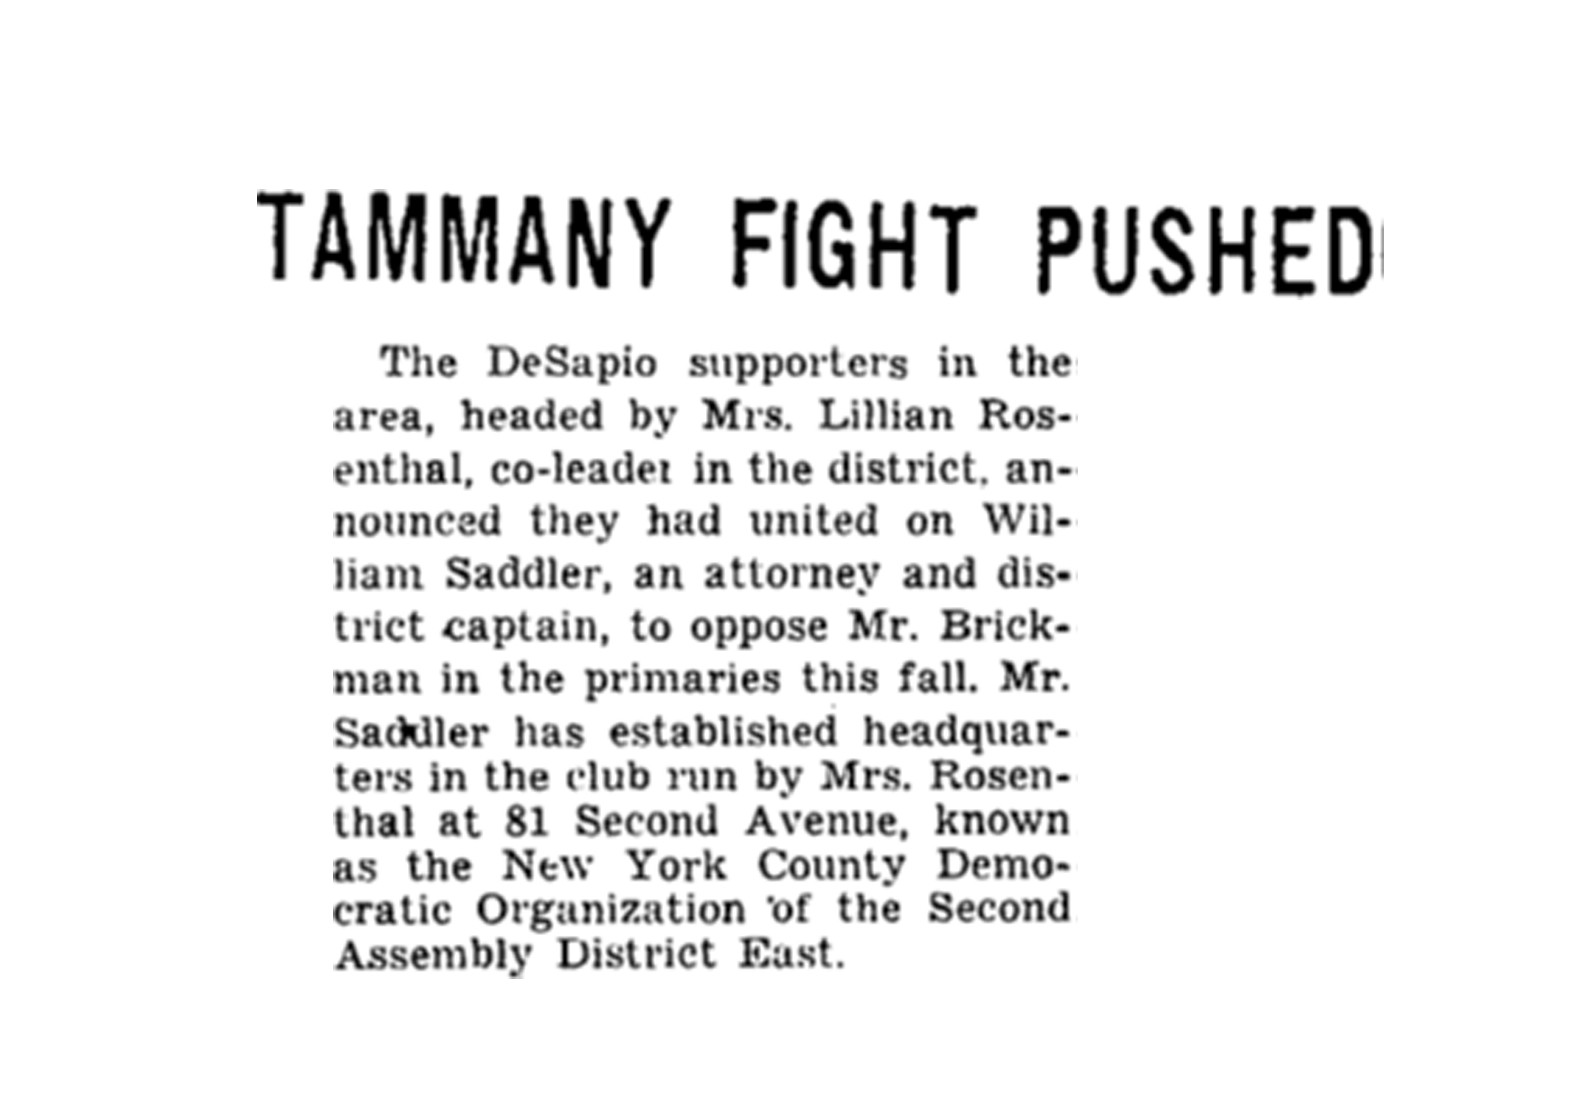 Newspaper article titles Tammany Fight Pushed from early 1900s.